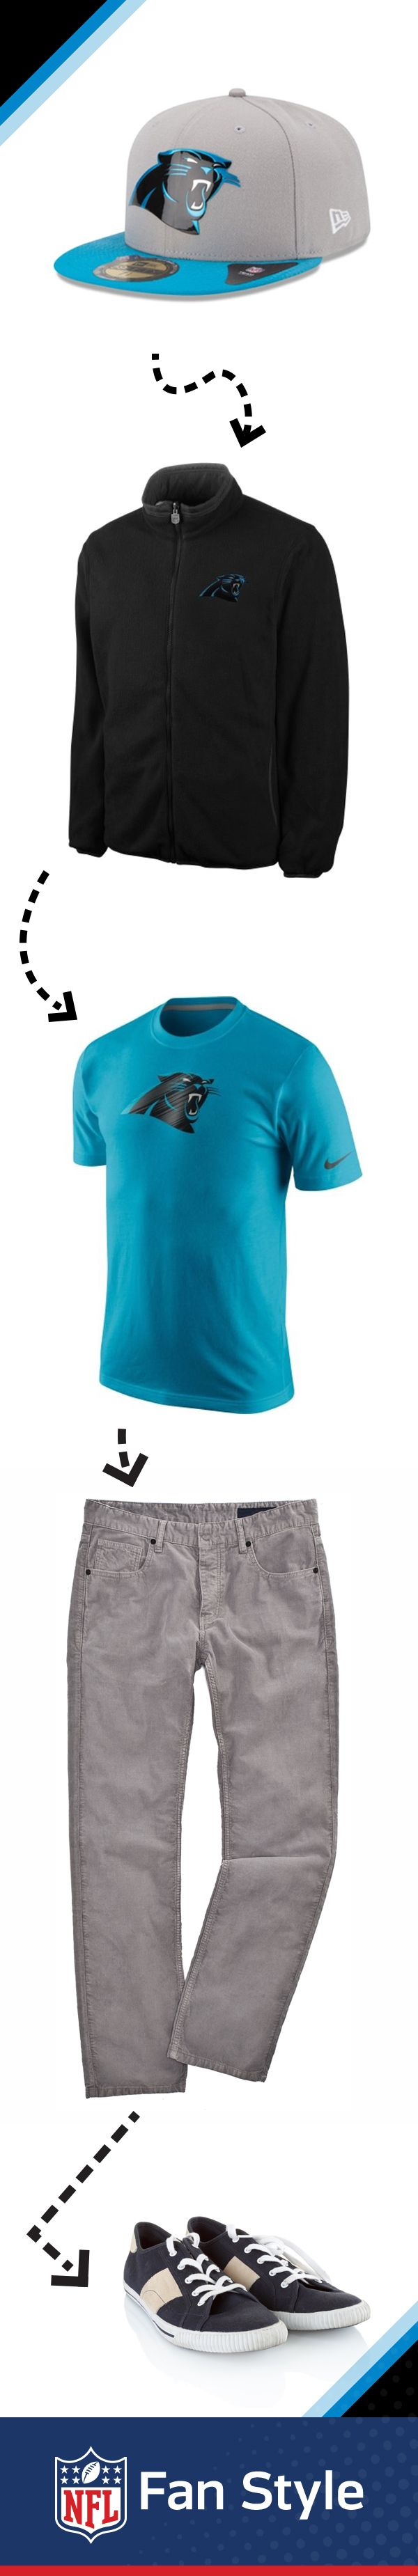 We can never get enough of that Carolina Panthers blue, so it's always good to make it a staple of any ensemble you're putting together. But, since the weather sometimes won't cooperate with your choice of t-shirt, always come prepared with an extra layer.